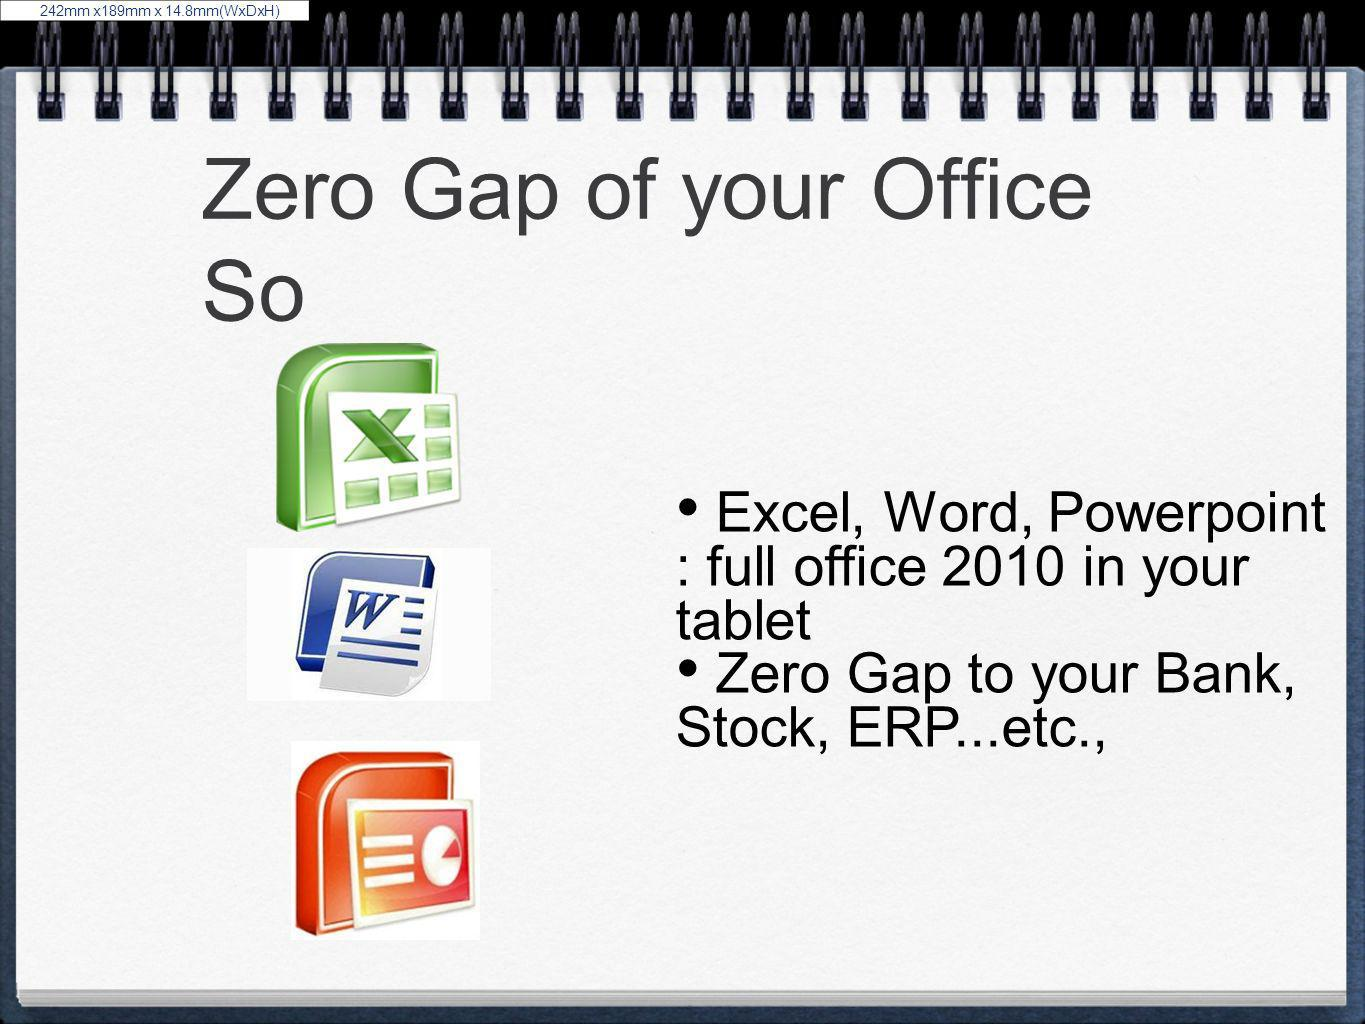 Zero Gap of your Office So Excel, Word, Powerpoint : full office 2010 in your tablet Zero Gap to your Bank, Stock, ERP...etc., 242mm x189mm x 14.8mm(W